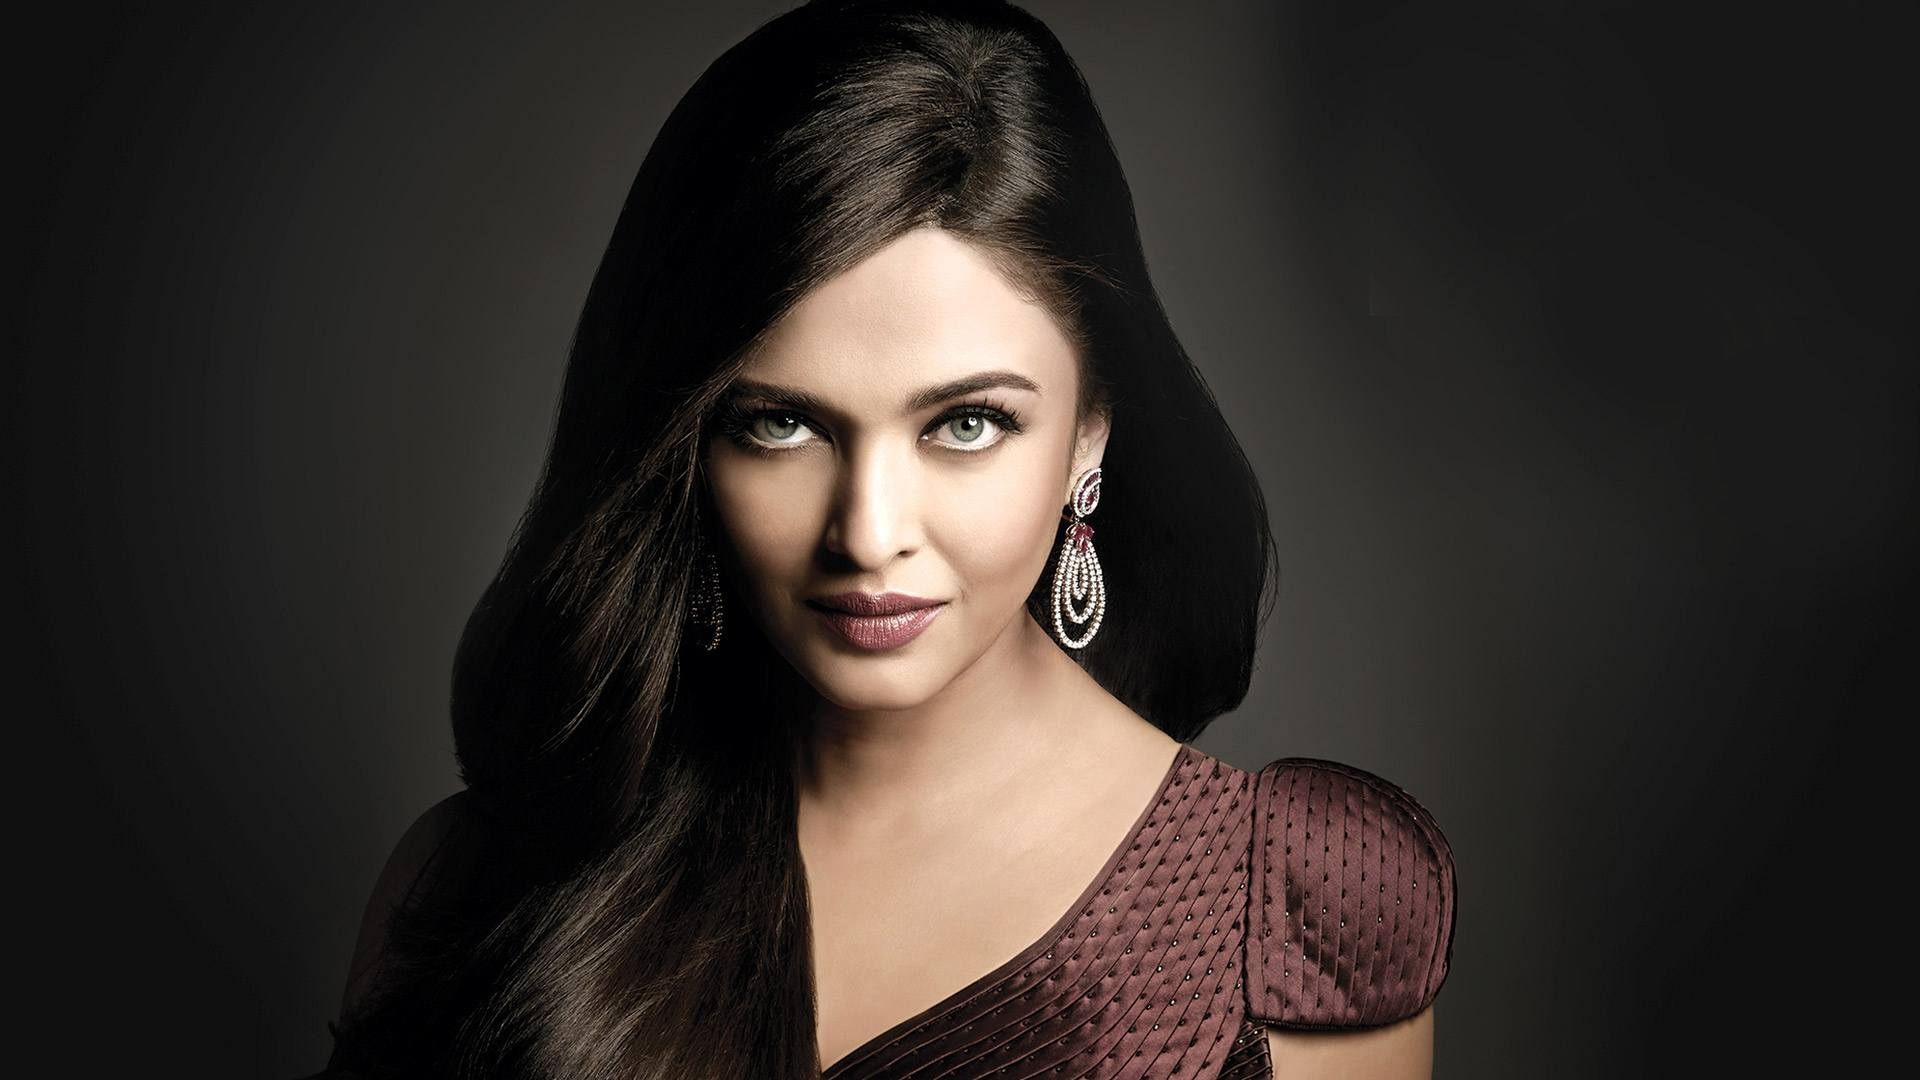 aishwarya_rai-wallpaper_2147483662